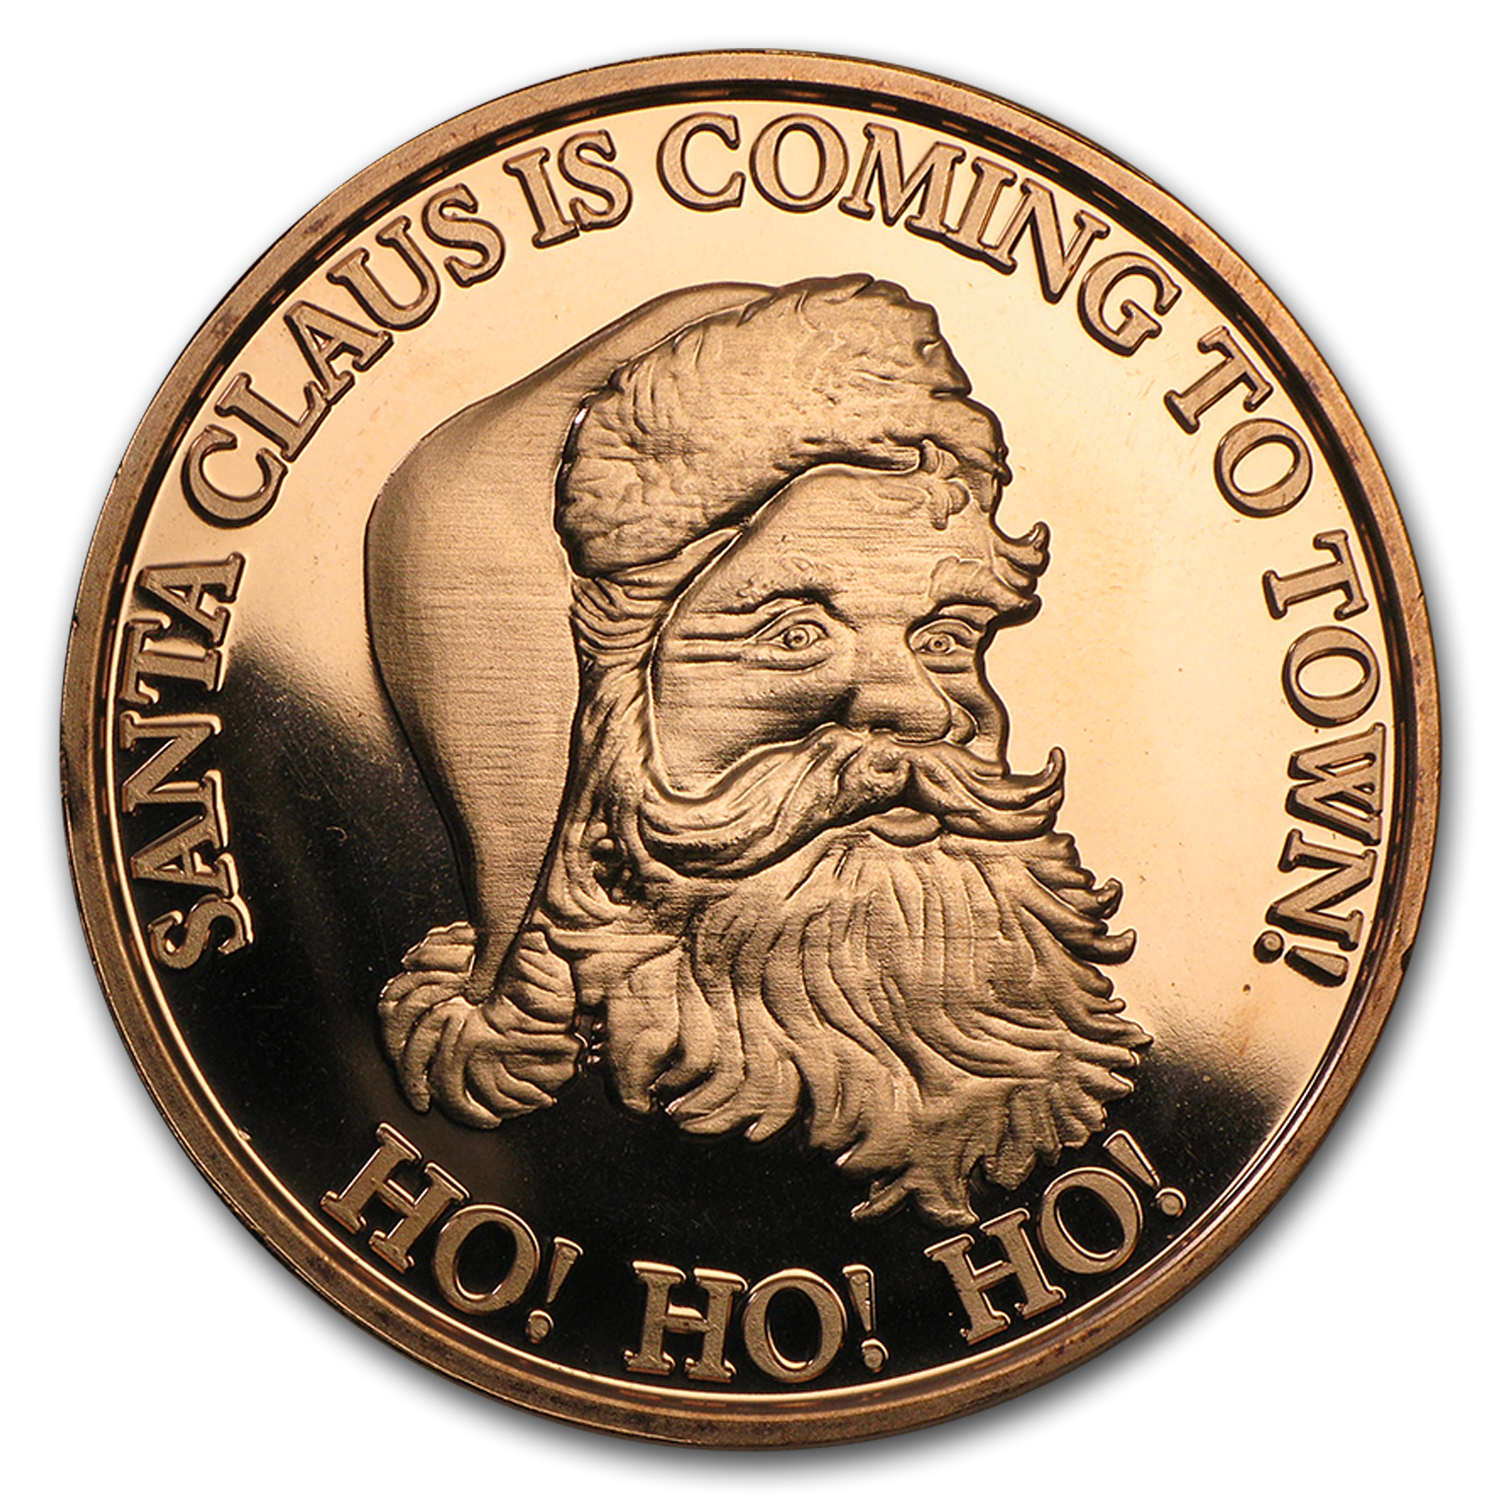 1 oz Copper Round - Santa Claus Is Coming To Town